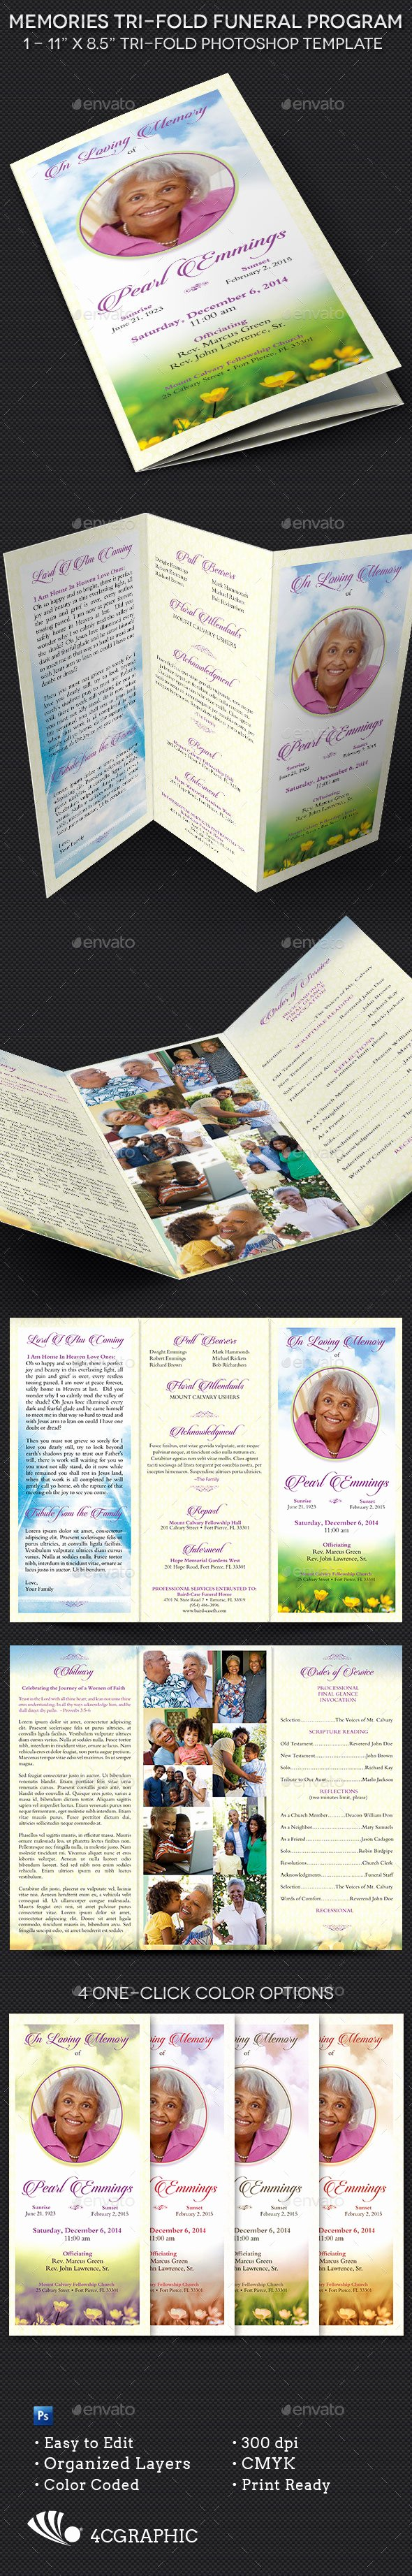 Tri Fold Funeral Program Template Fresh Memories Tri Fold Funeral Program Template